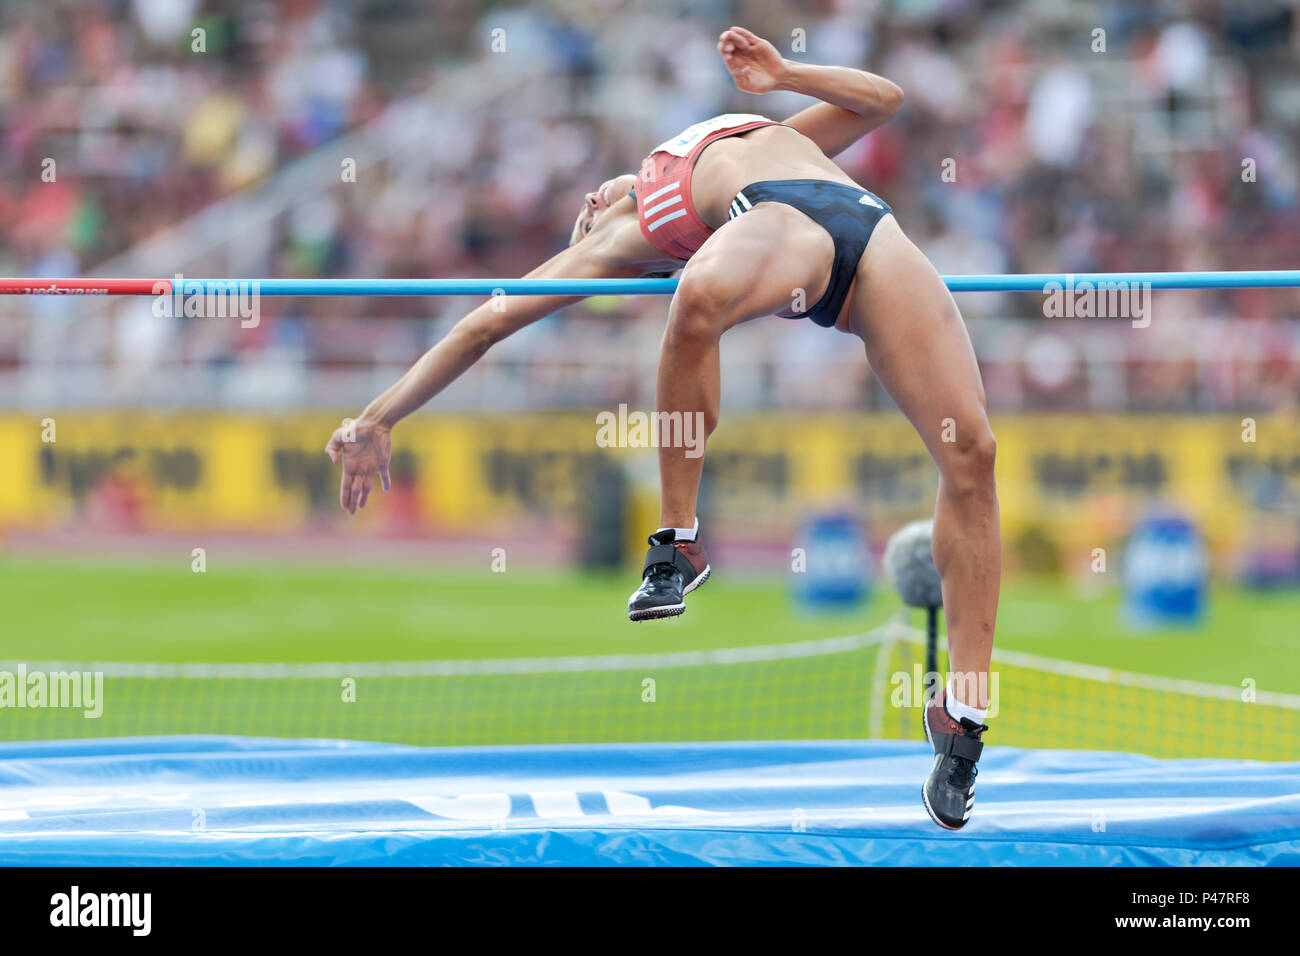 STOCKHOLM, SWEDEN, JUNE 10, 2018: Bianca Salming (SWE) at the Diamond league high jump event at Olympic arena Stockholm Stadion. - Stock Image